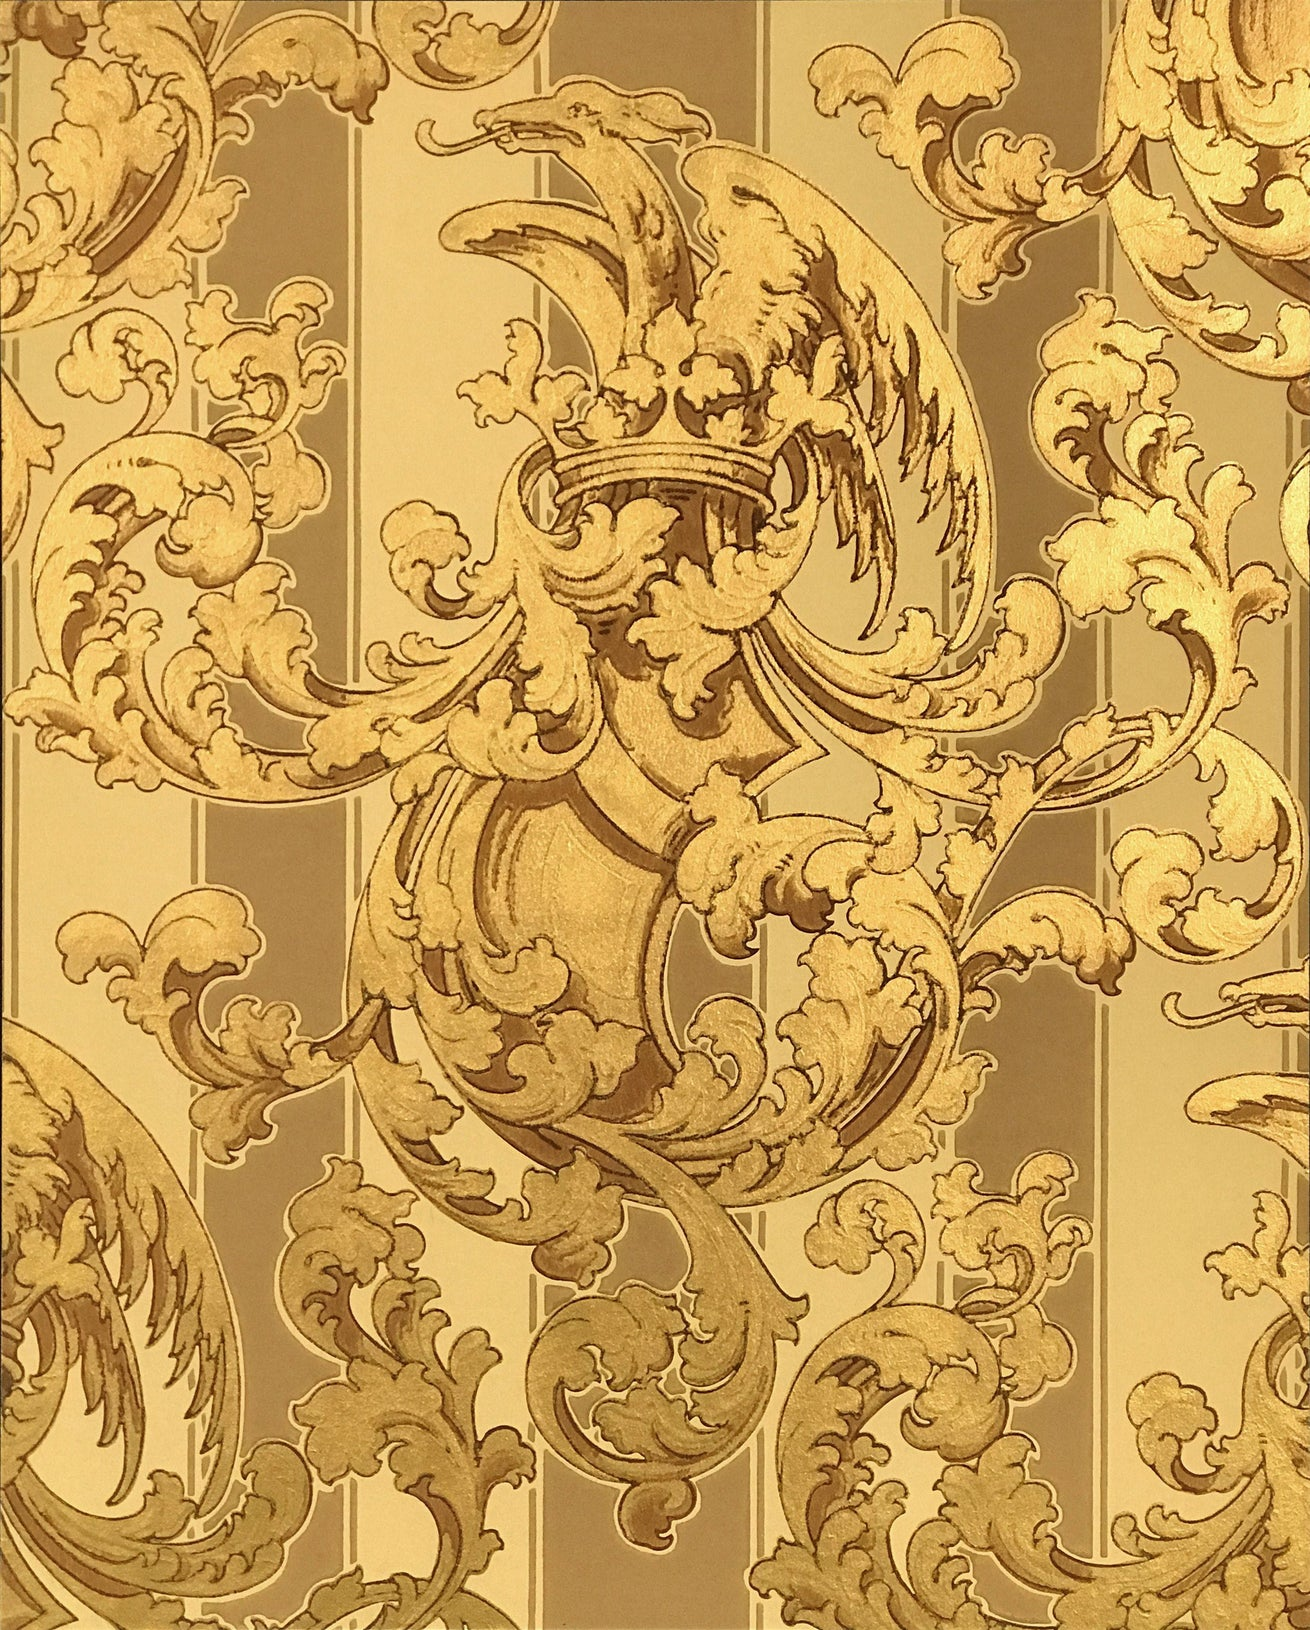 Shield, Crown and Griffin Amid Gilt Scrolls - Mounted Antique Wallpaper Panel